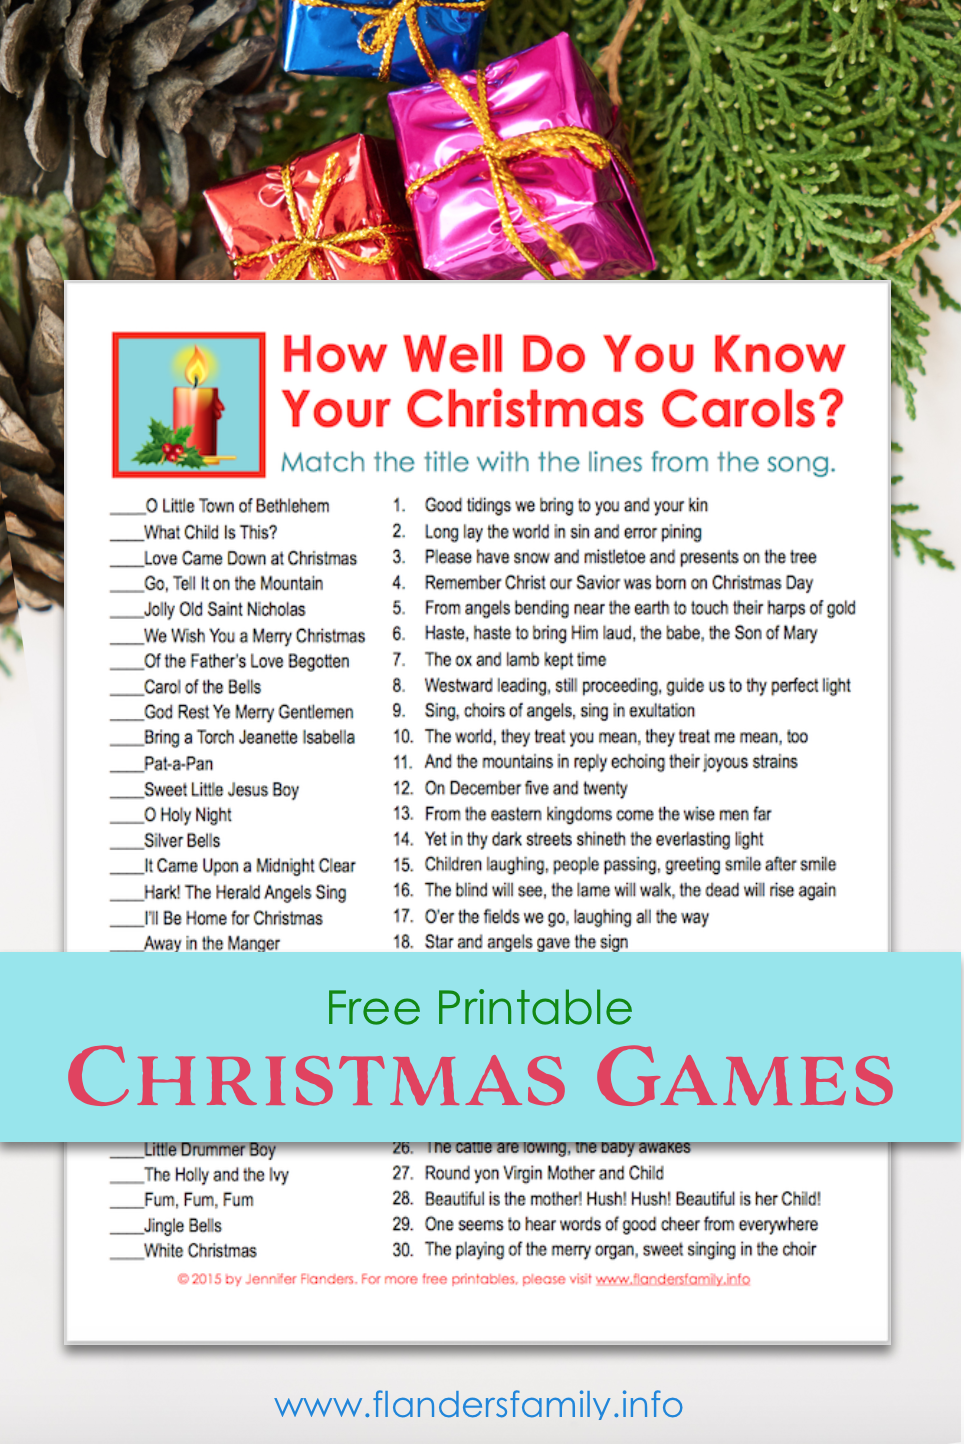 How Well Do You Know Your Christmas Carols Party Game